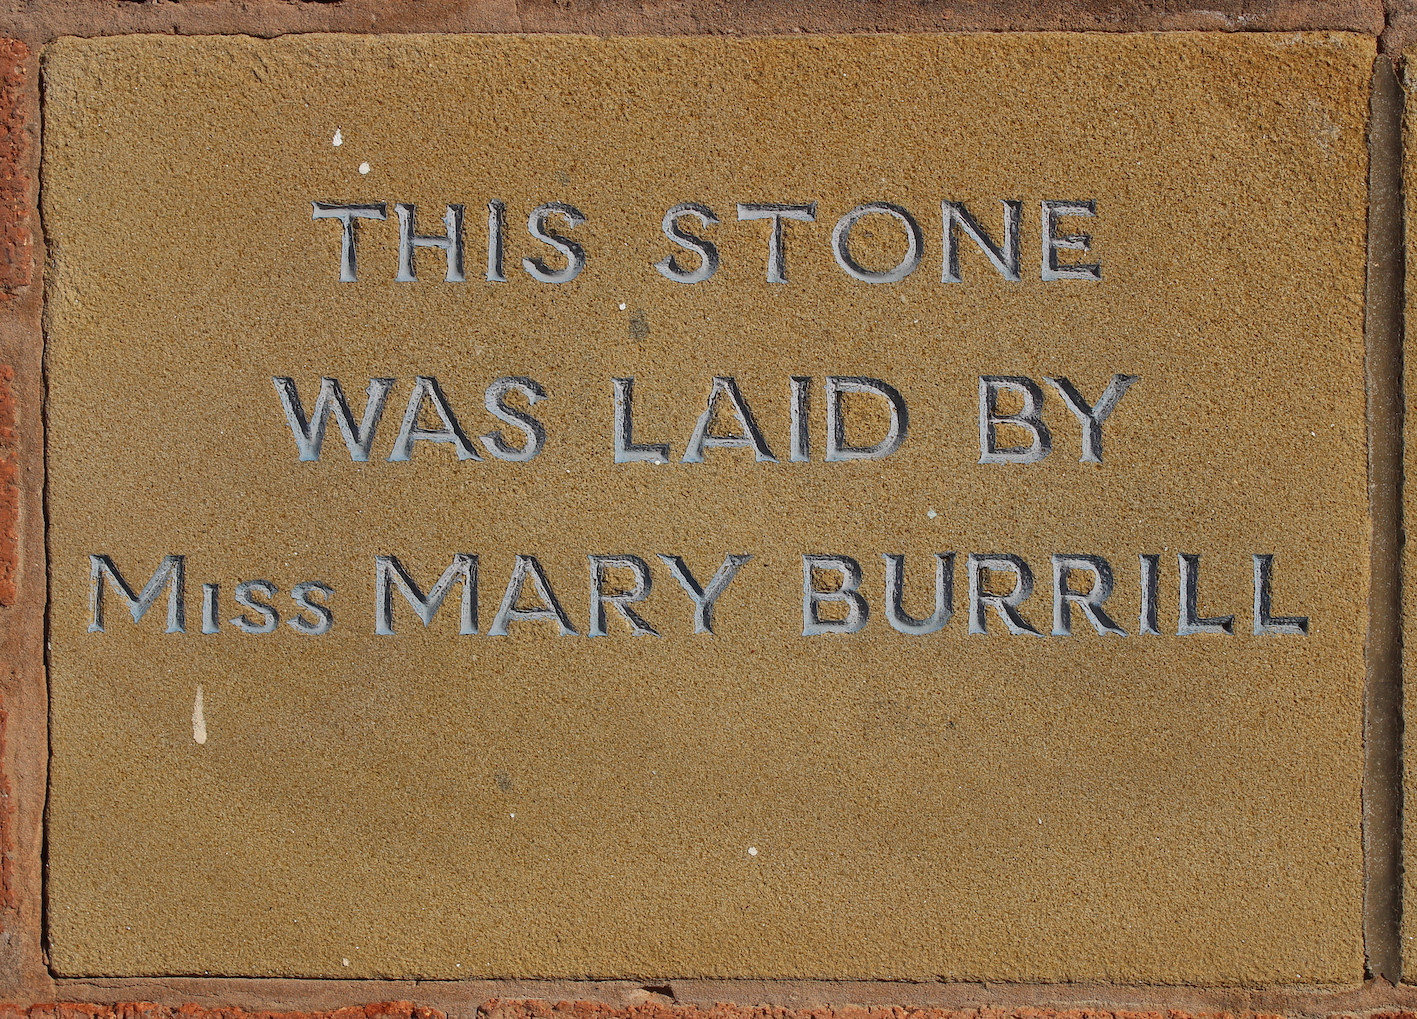 Memorial stone laid by Miss Mary Burrill